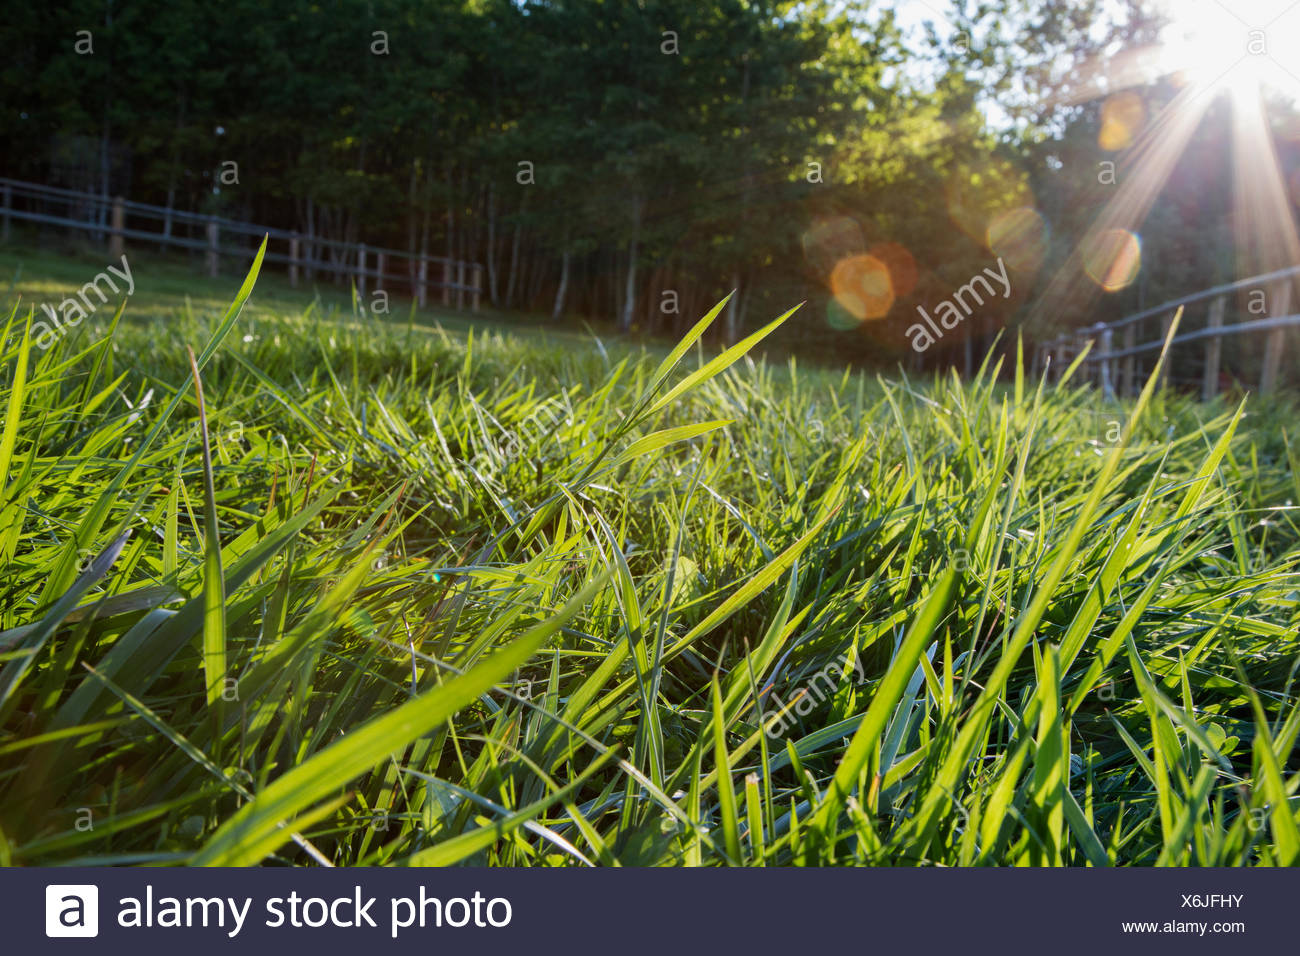 Sun shining on blades of grass - Stock Image